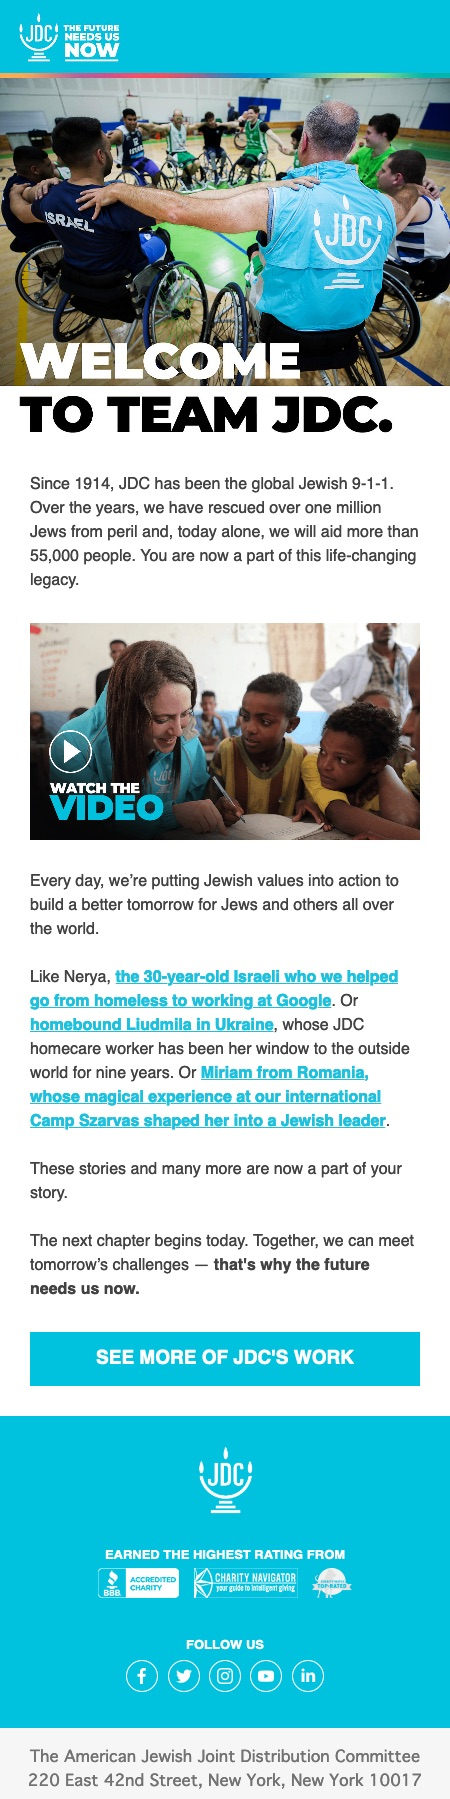 This is how you put Jewish values into action